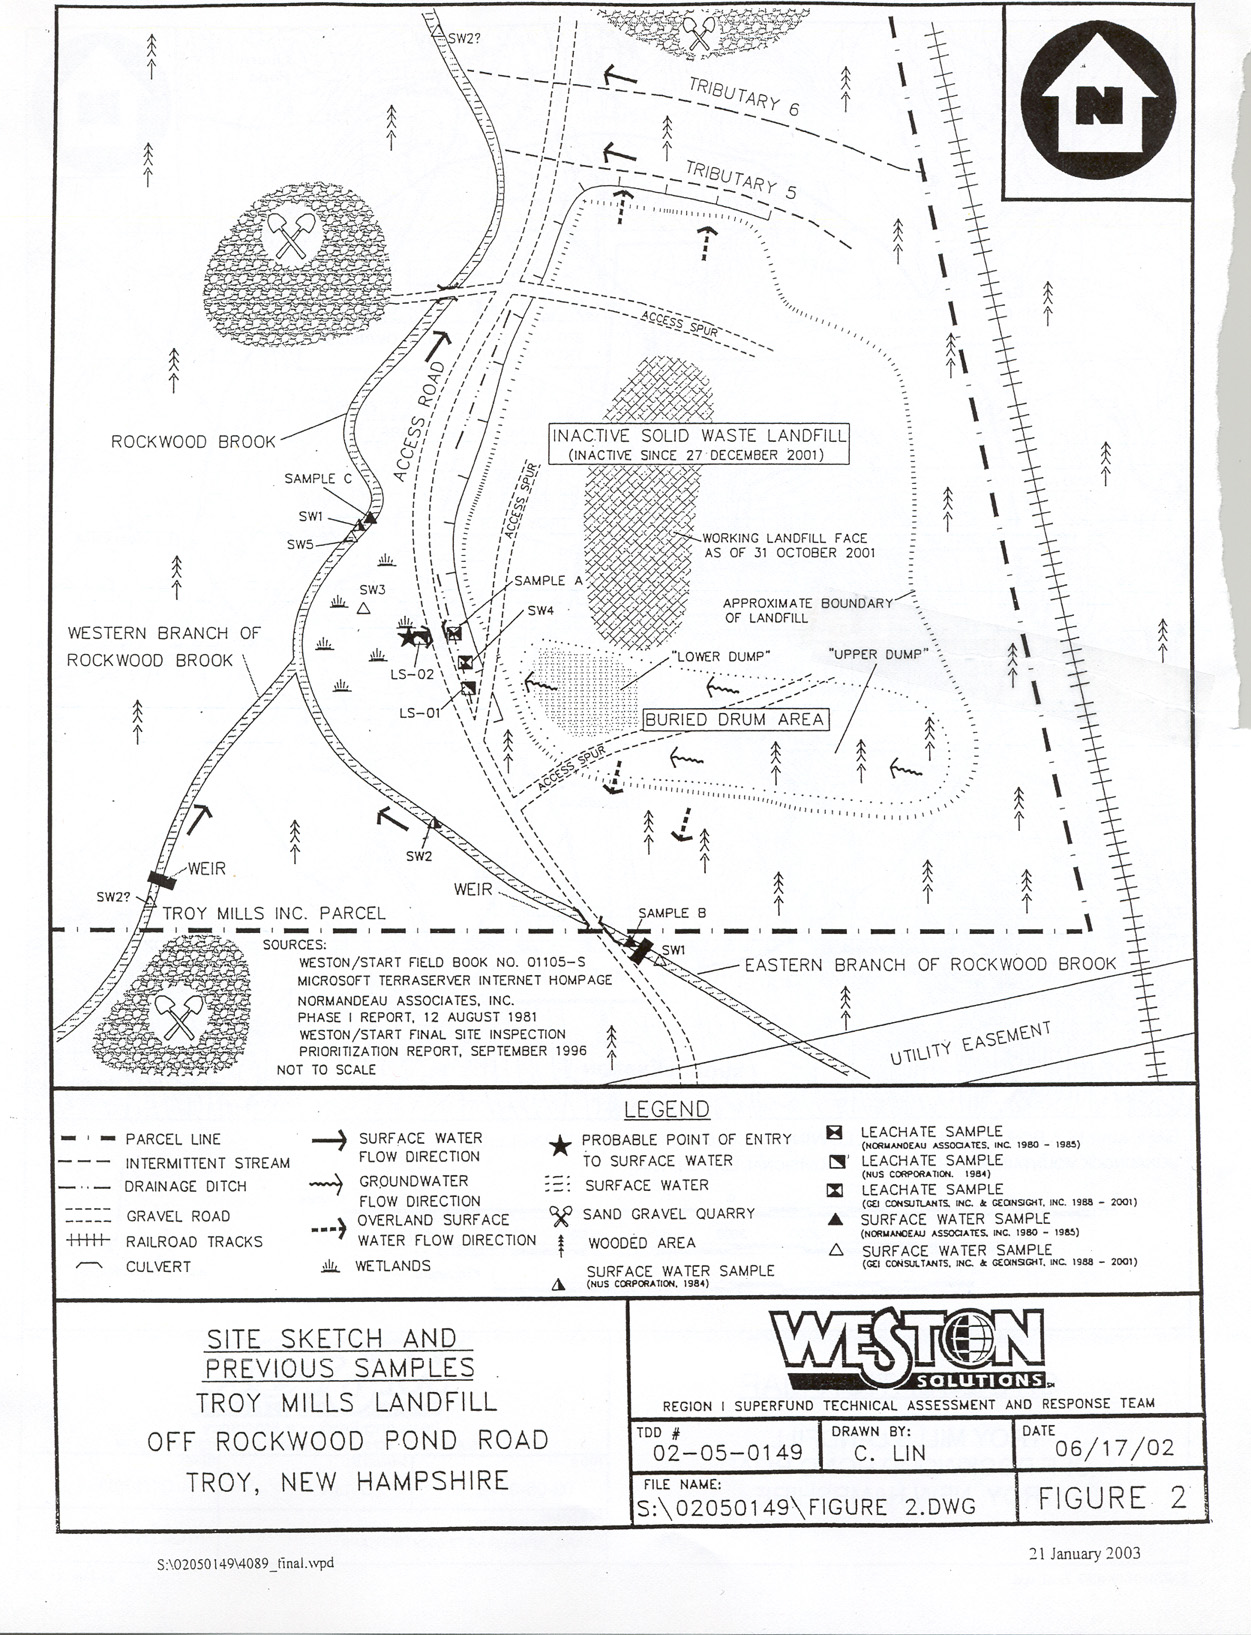 Figure 2: General Map of Troy Mills Landfill Site.